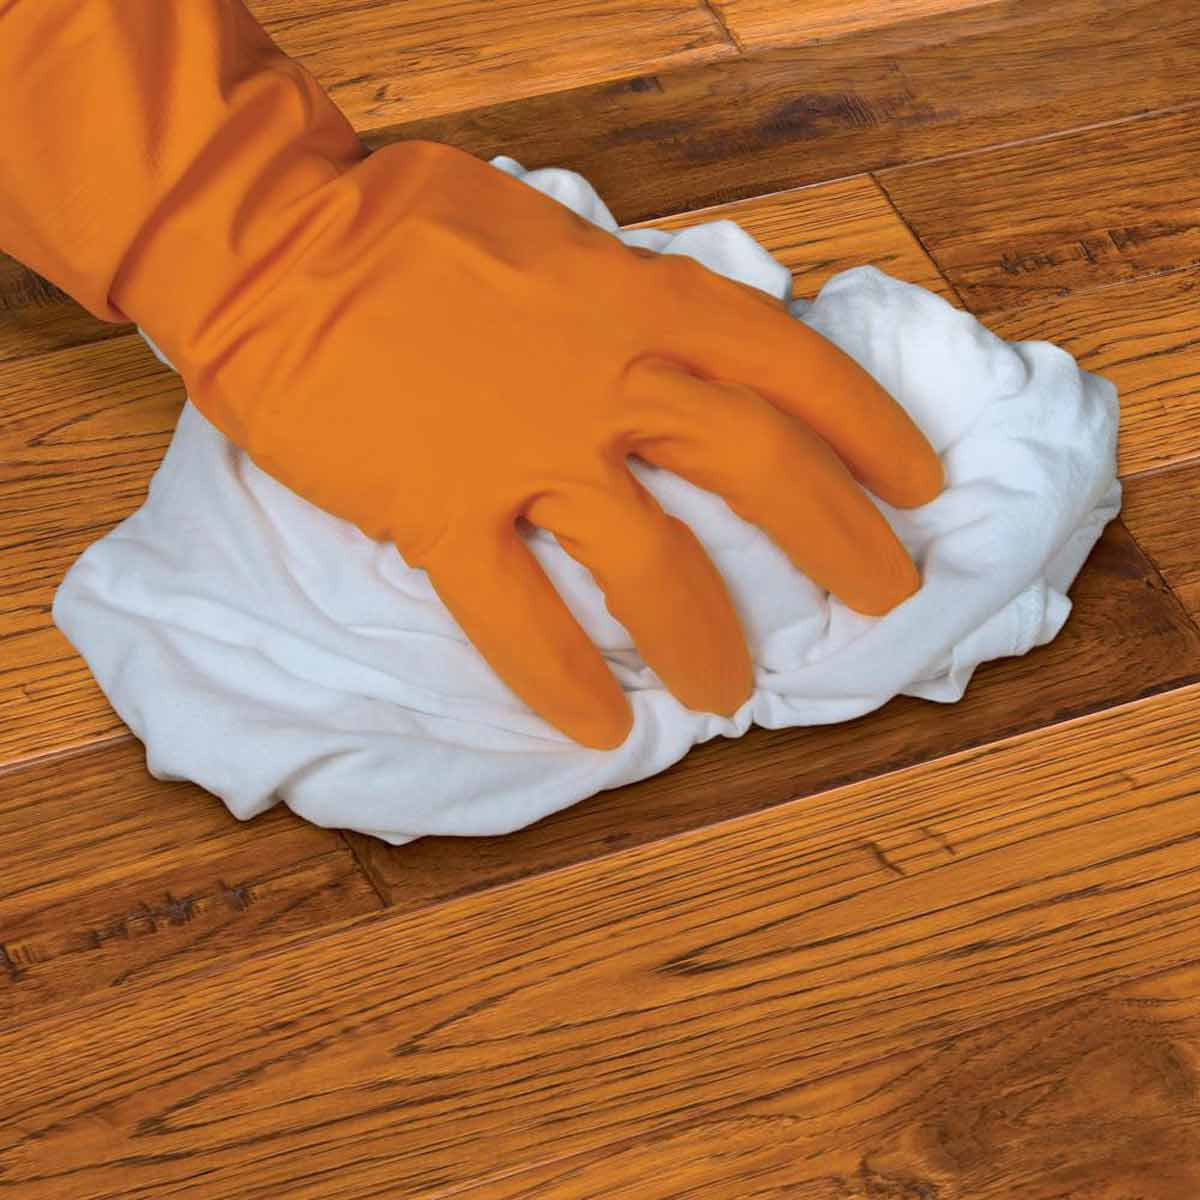 Superiorbilt Latex Gloves